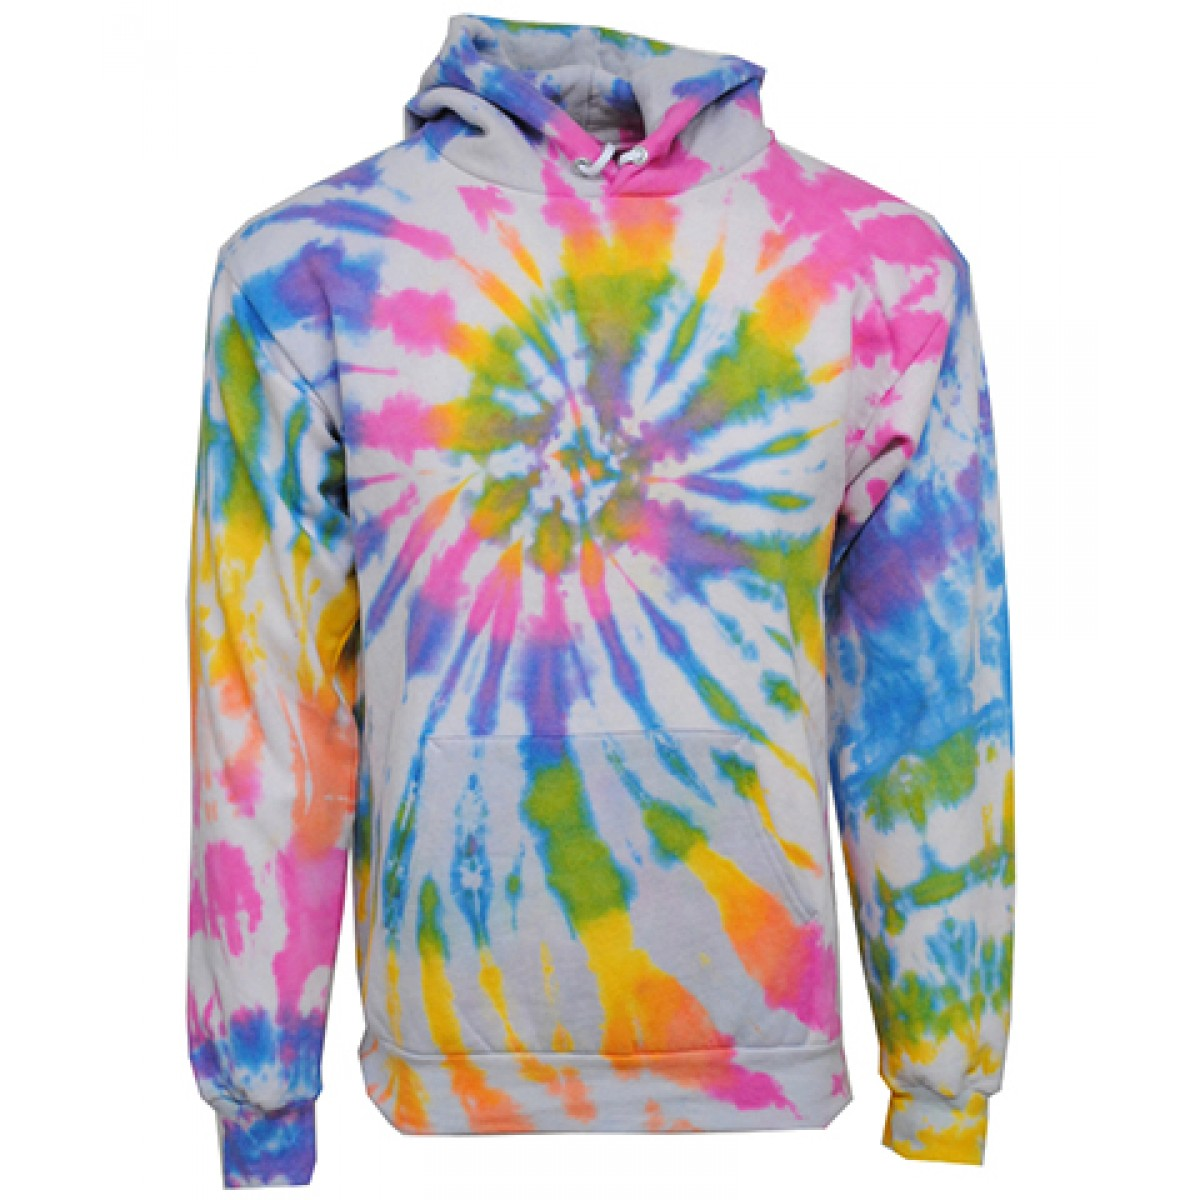 Tie die Hooded Sweatshirts  50/50 Heavy Blend-Multi -YM